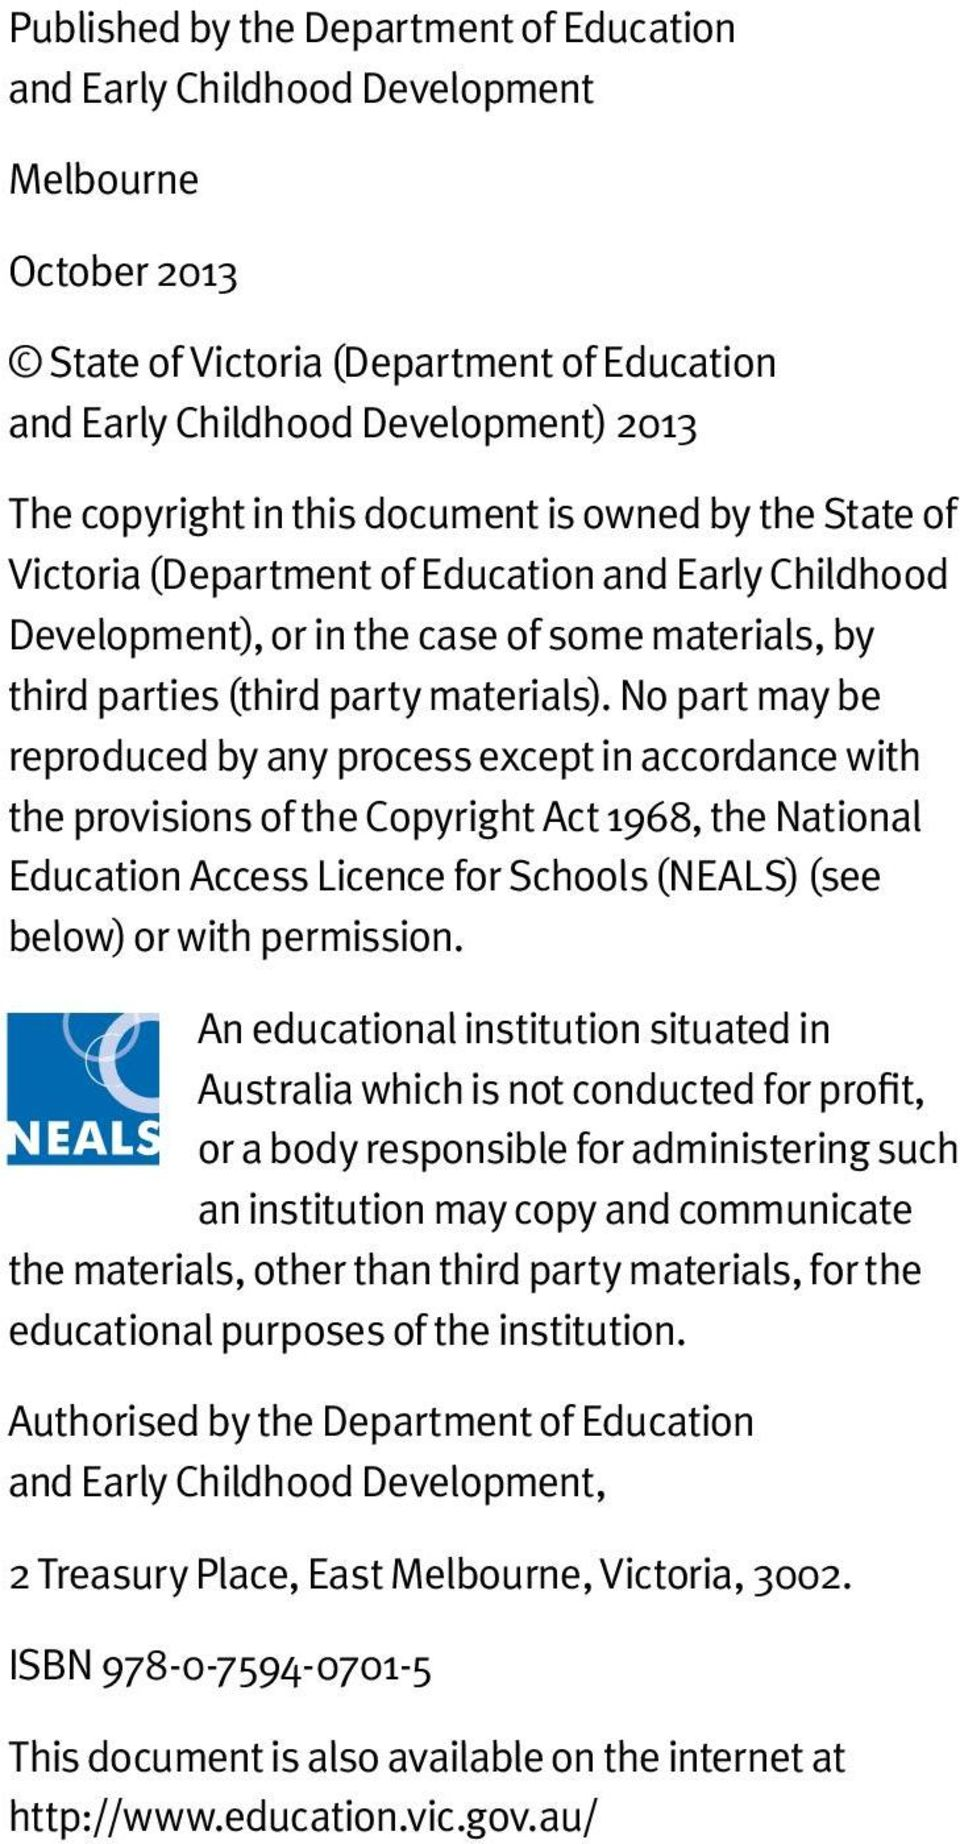 No part may be reproduced by any process except in accordance with the provisions of the Copyright Act 1968, the National Education Access Licence for Schools (NEALS) (see below) or with permission.